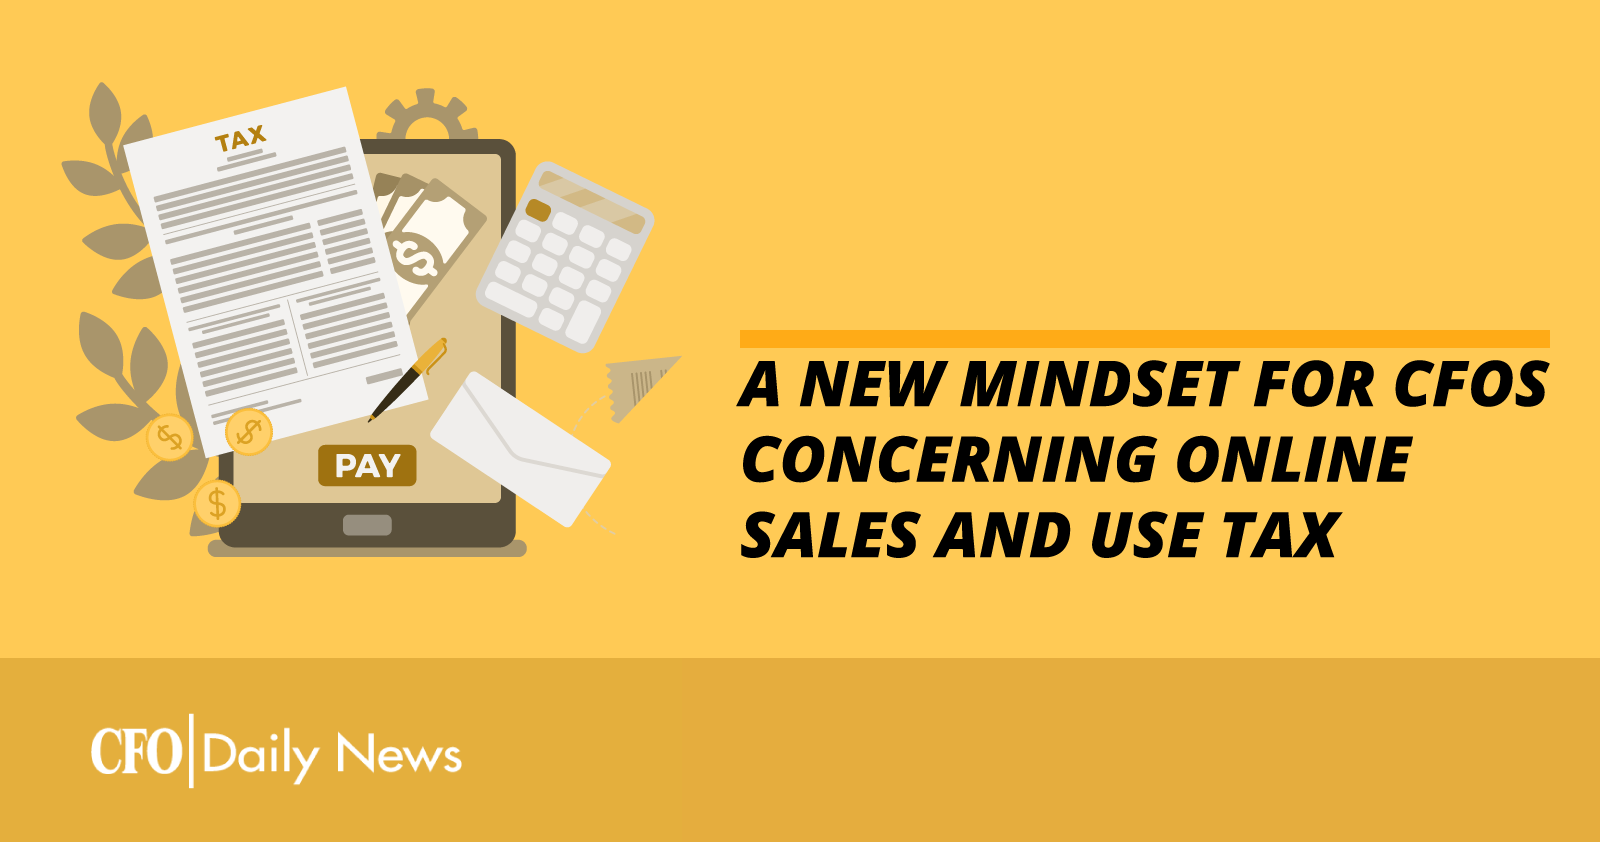 a new mindset for CFOs concerning online sales and use tax